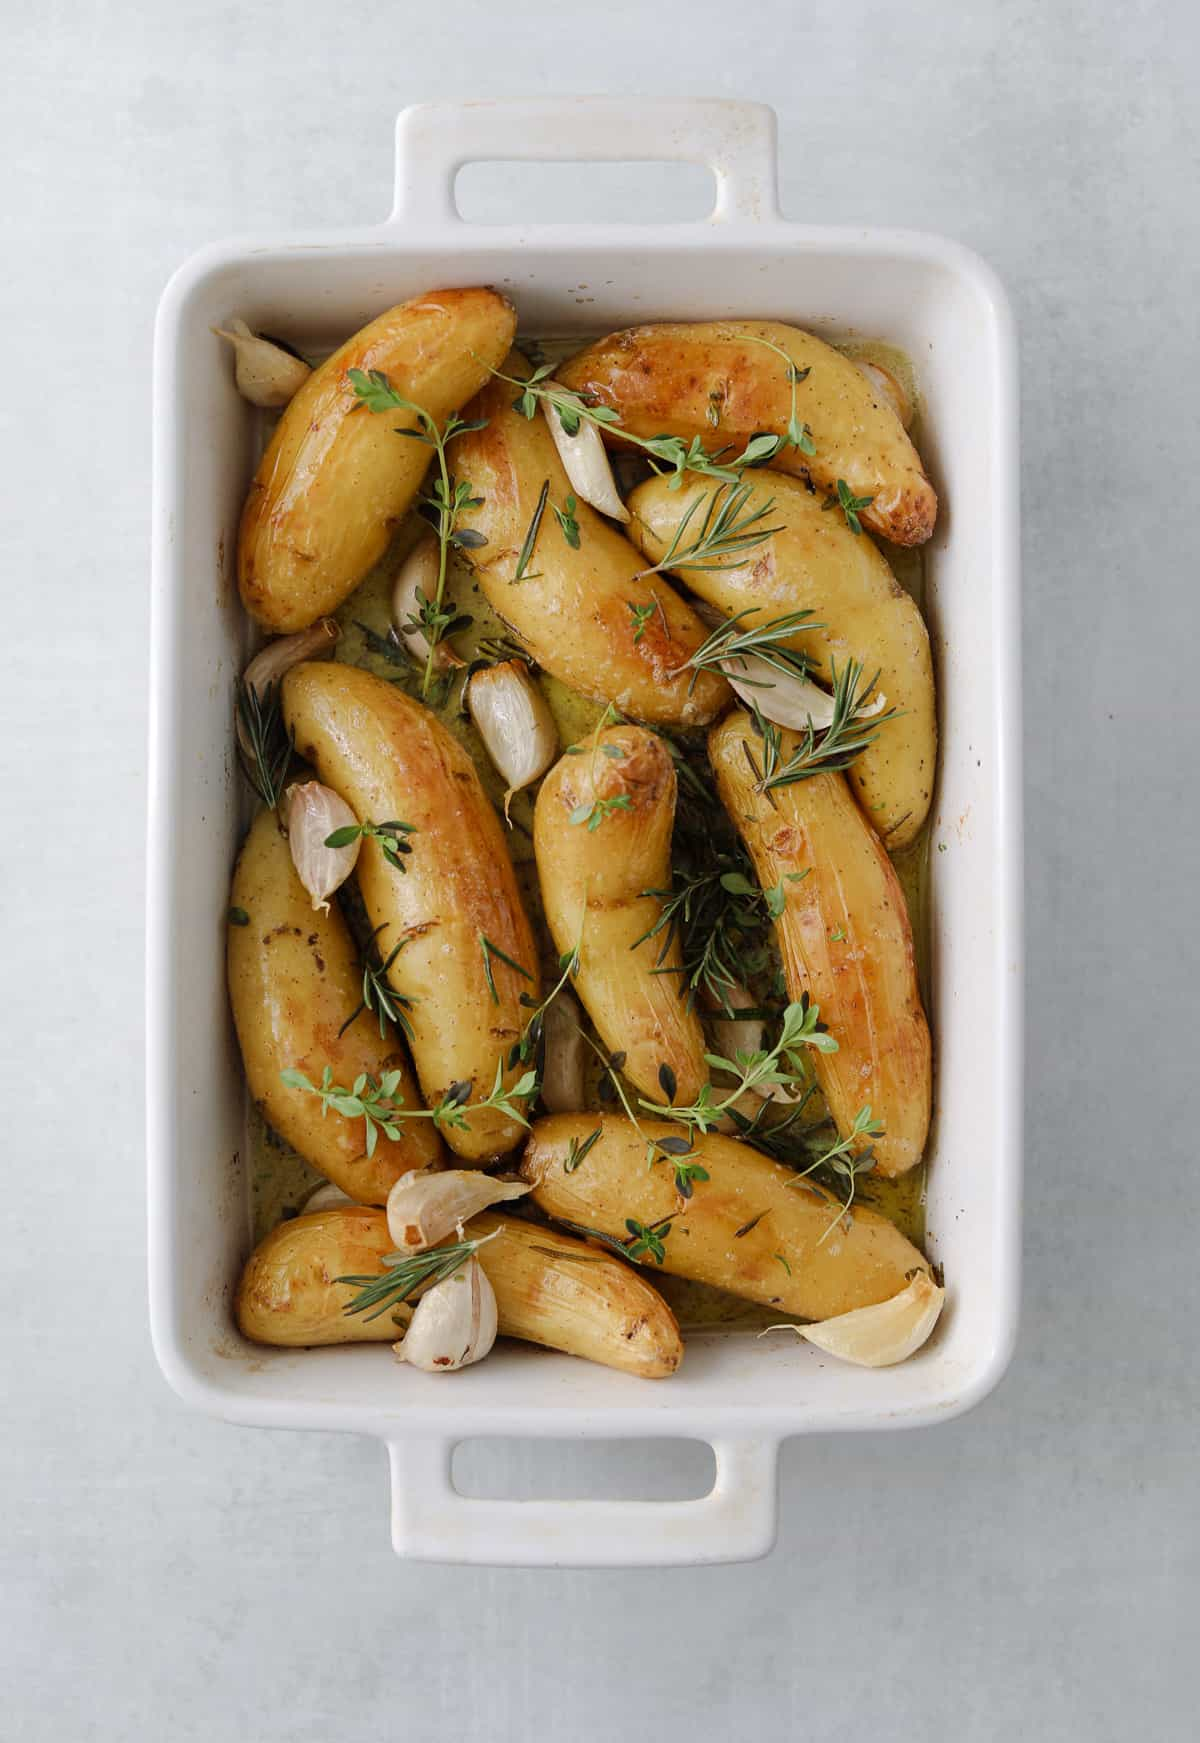 roasted potatoes in a white rectangle baking dish with herbs, garlic and oil on a blue background